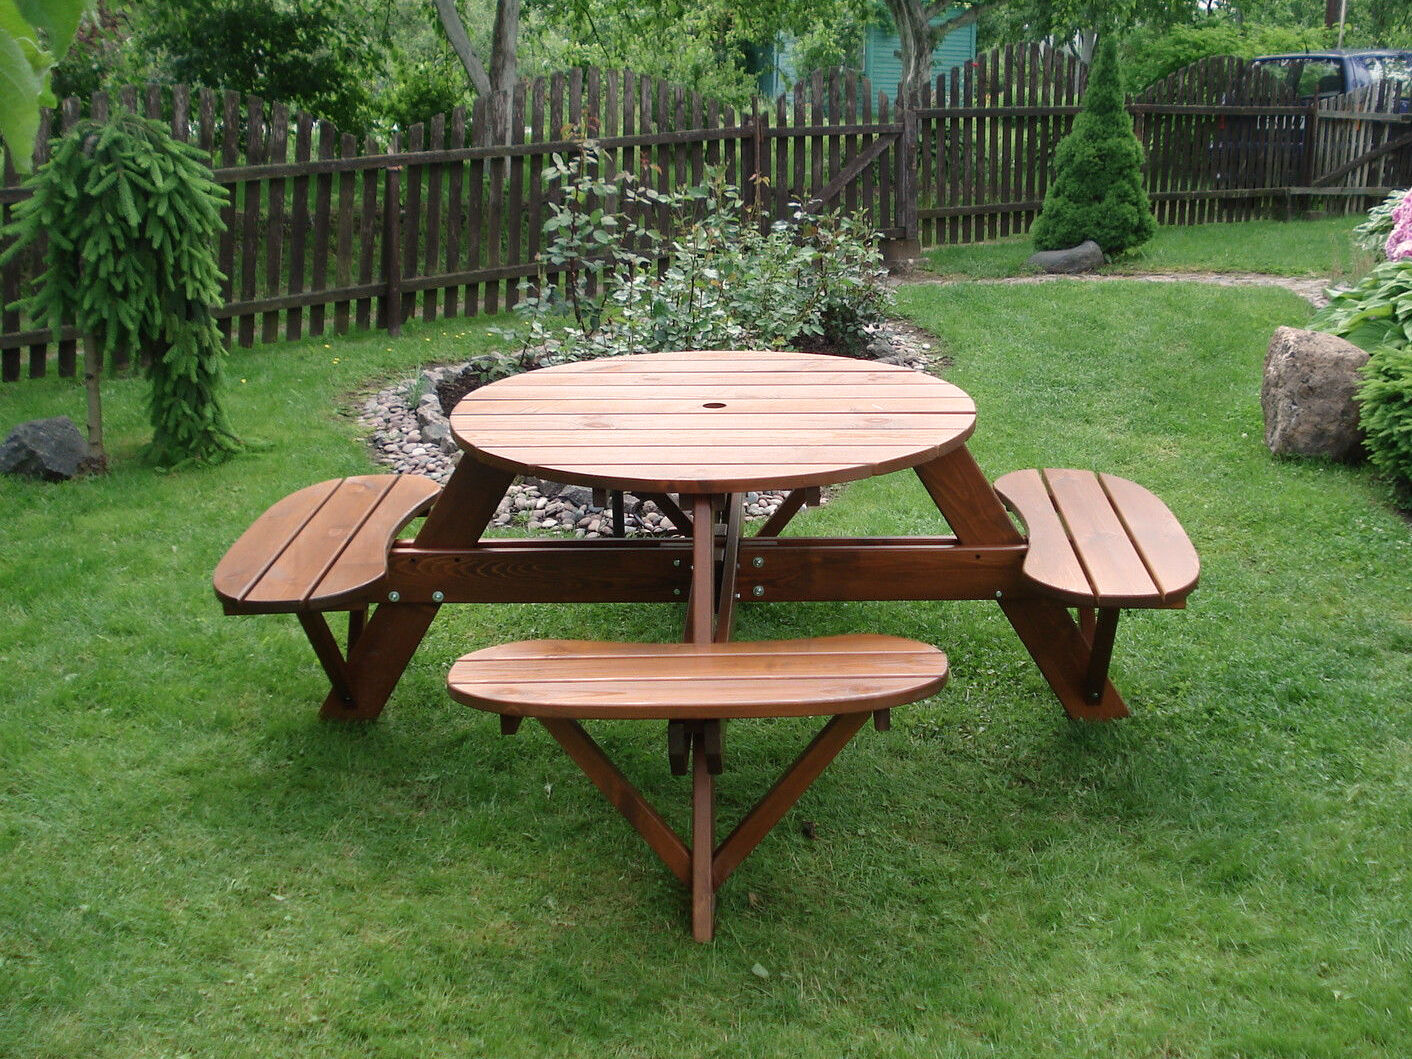 How to Build a Round Picnic Table With Seats | eBay